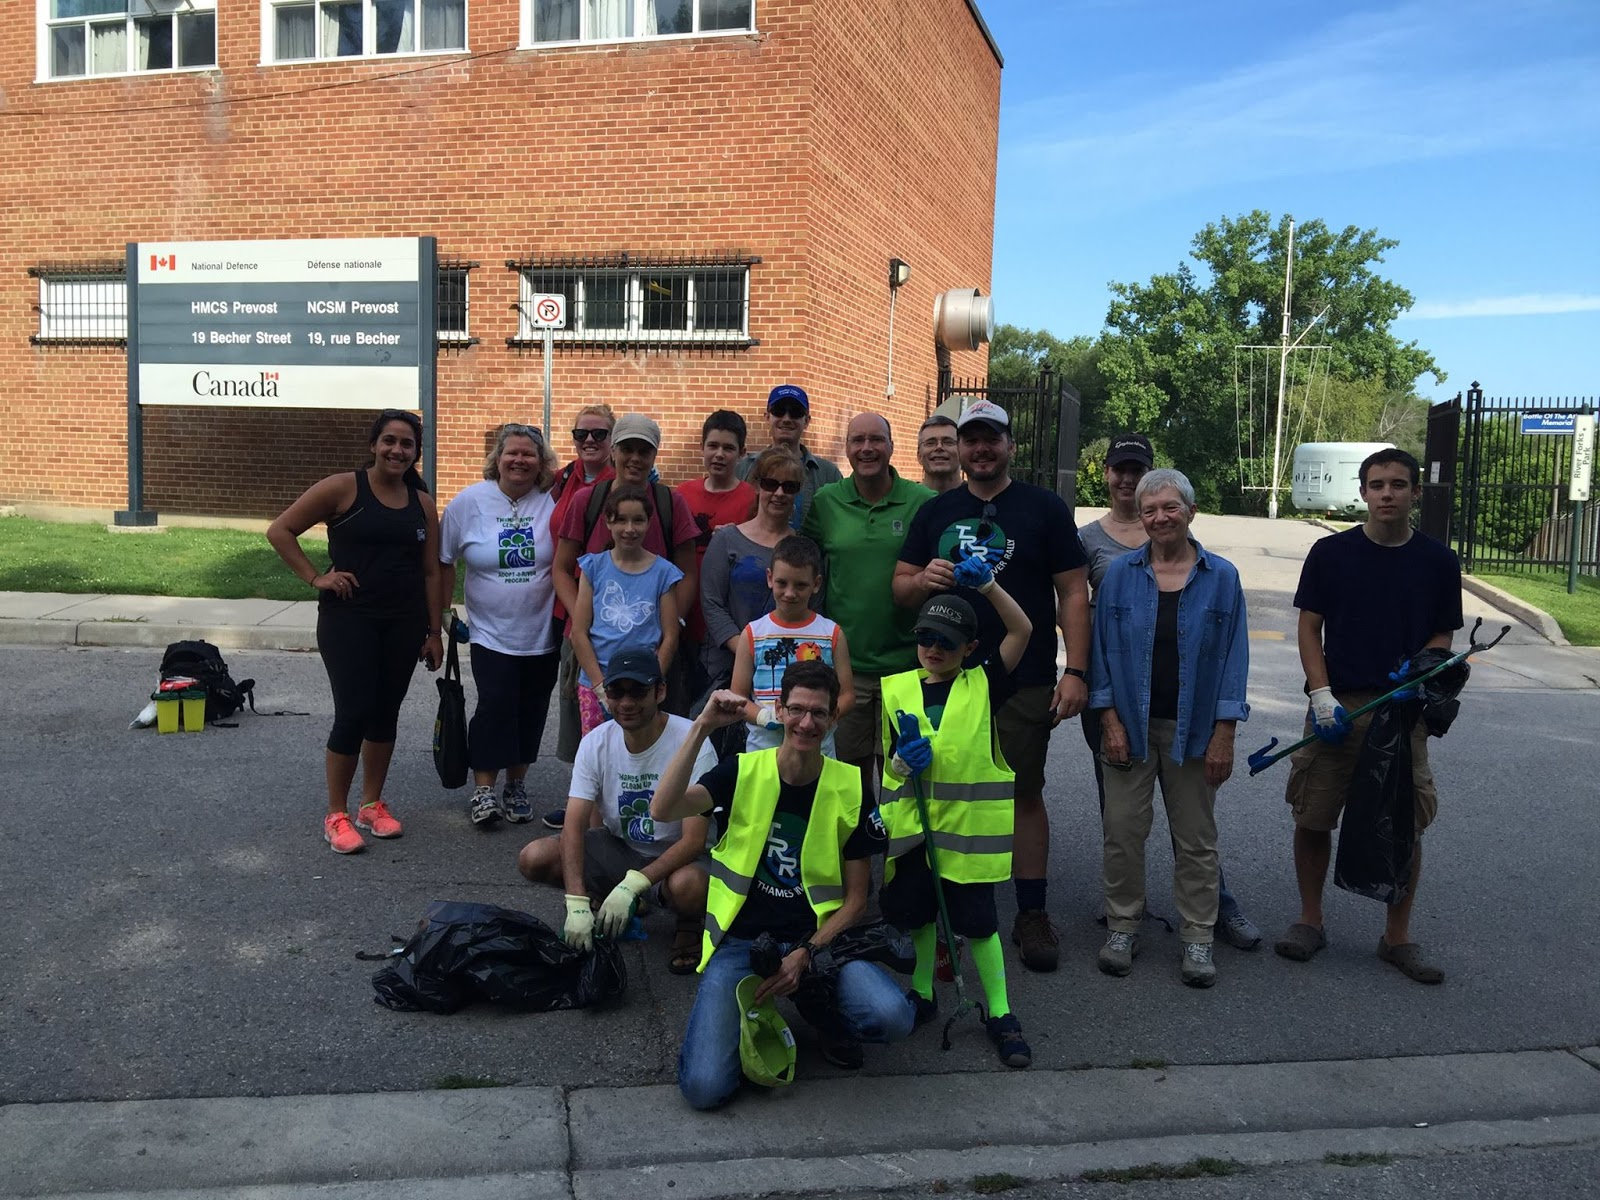 Antler River Rally: August 15th Cleanup With Help